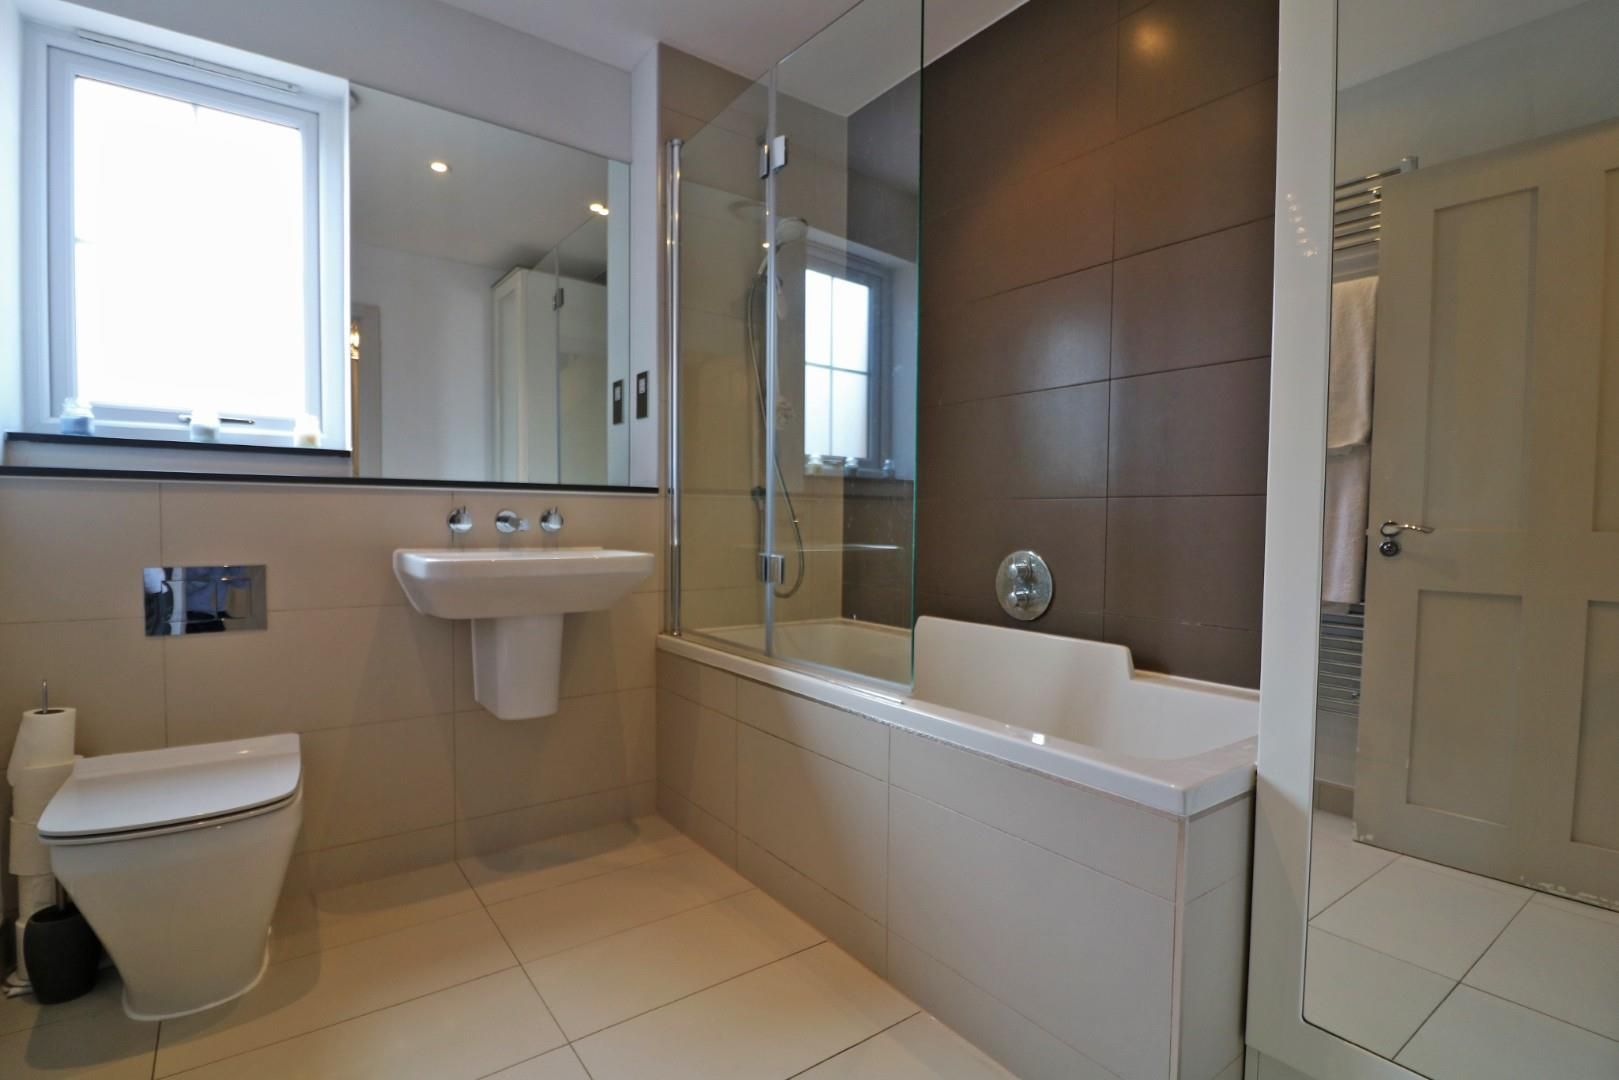 4 bed semi-detached to rent in Binfield  - Property Image 5